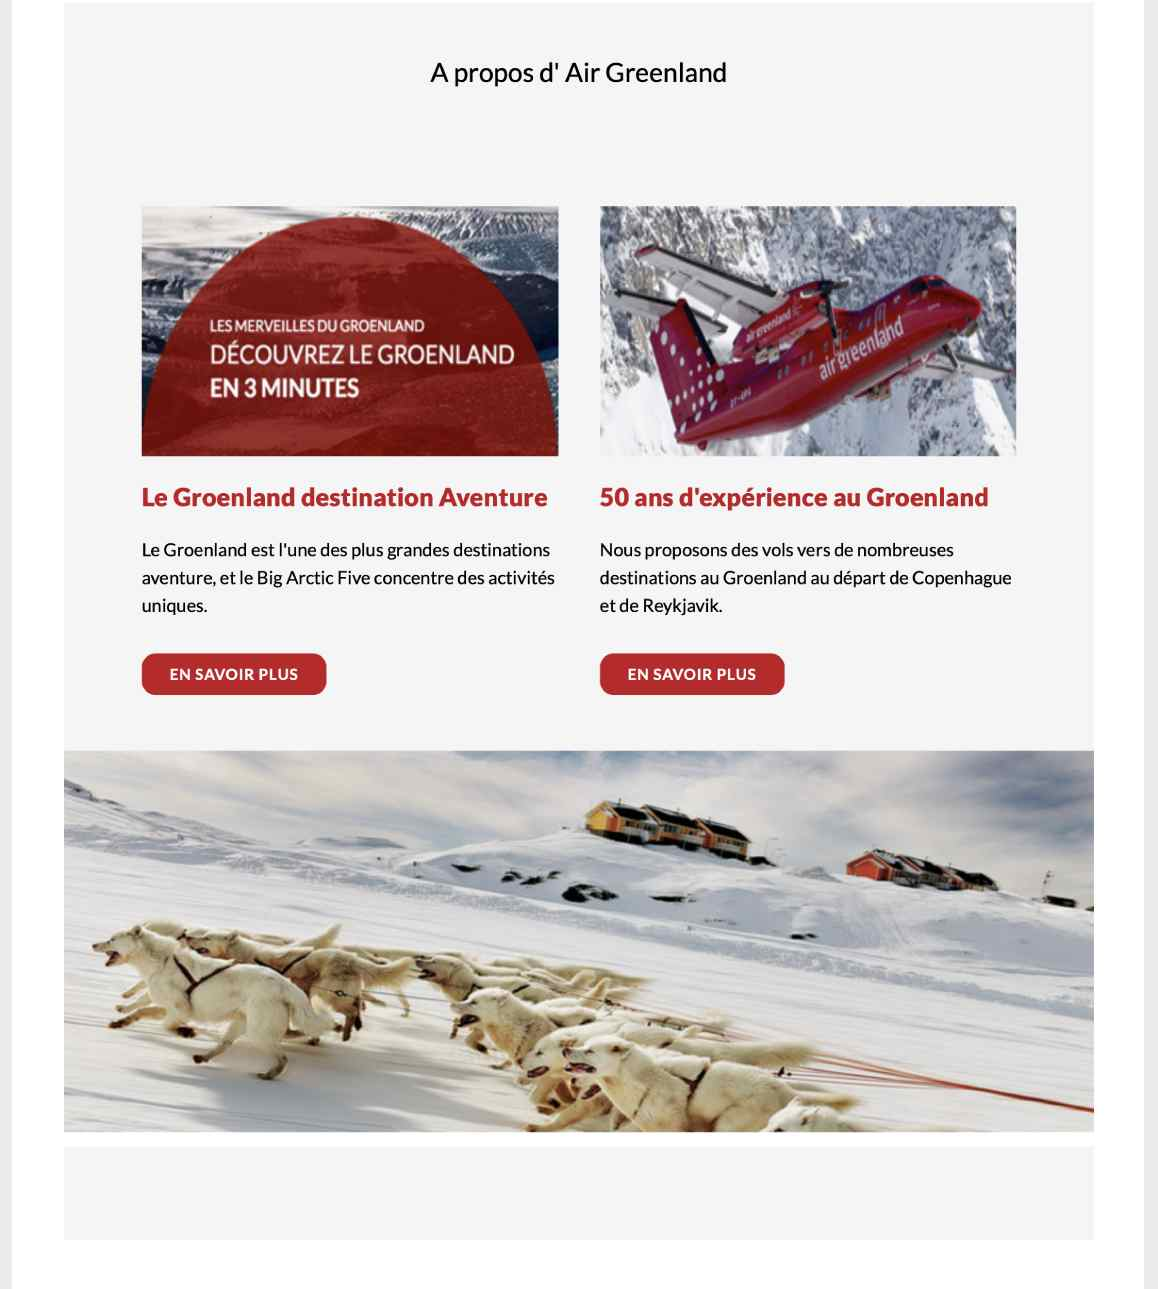 air-greenland-web-zone-digital-zone-web-media.news